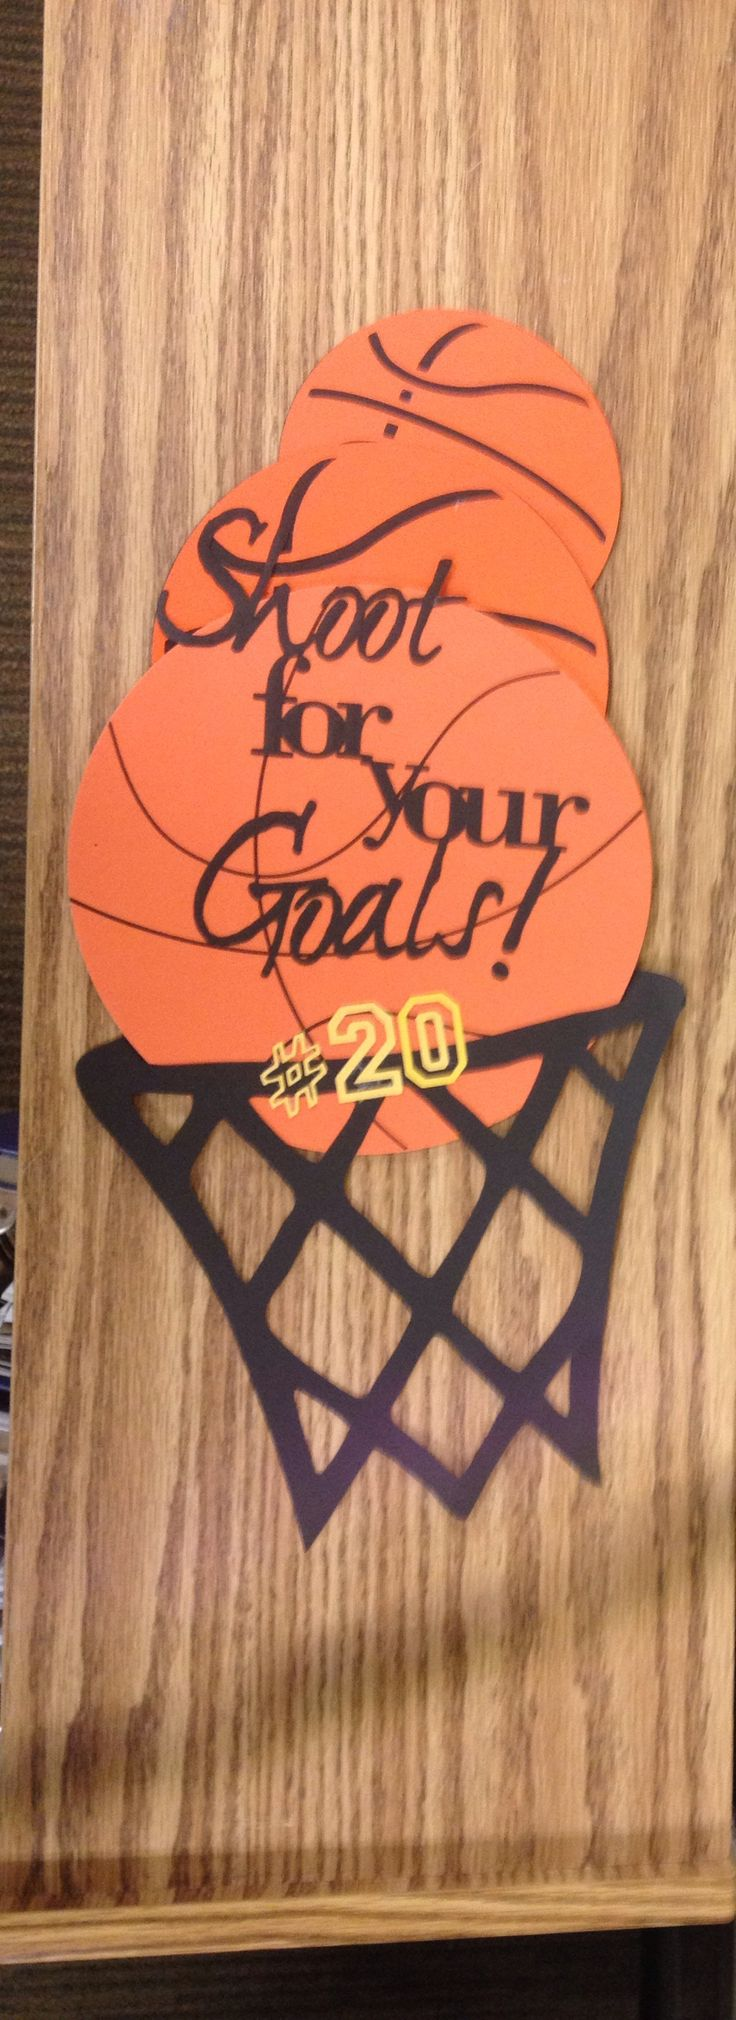 Locker decoration basketball pinterest soccer boys for Net decoration ideas